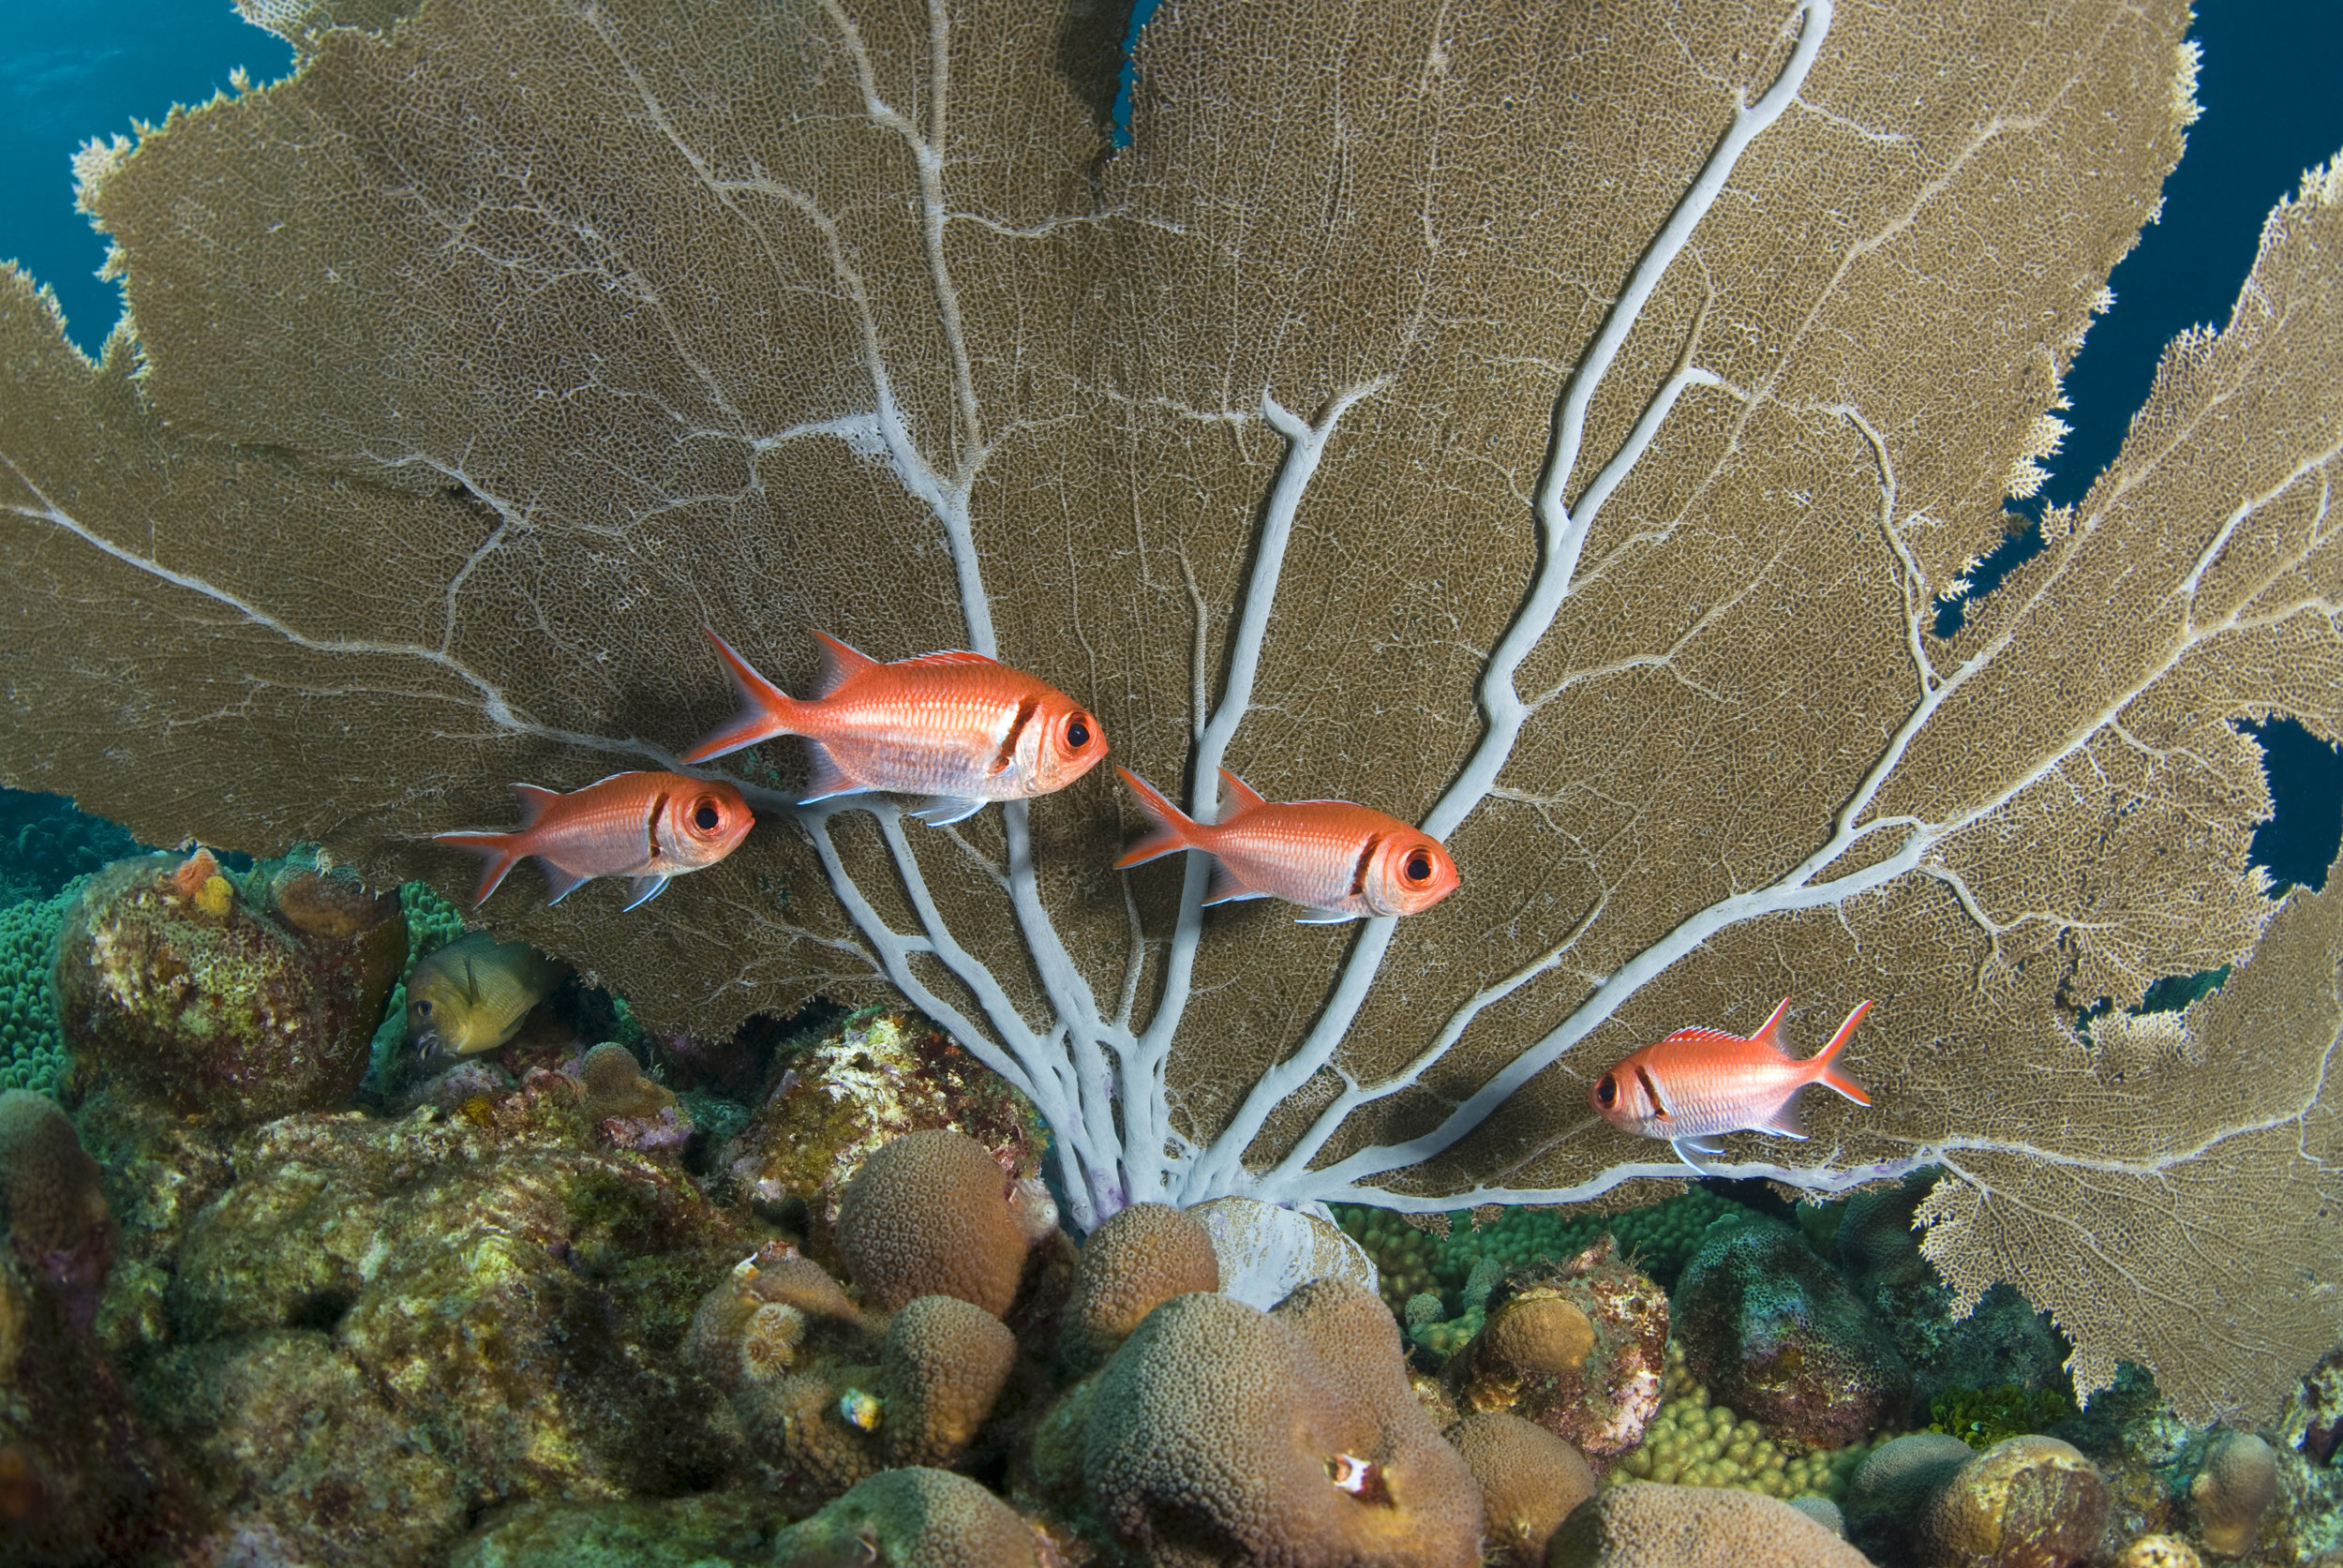 squirrel fish with fan CREDIT: THE OCEAN AGENCY/ coral reef image bank